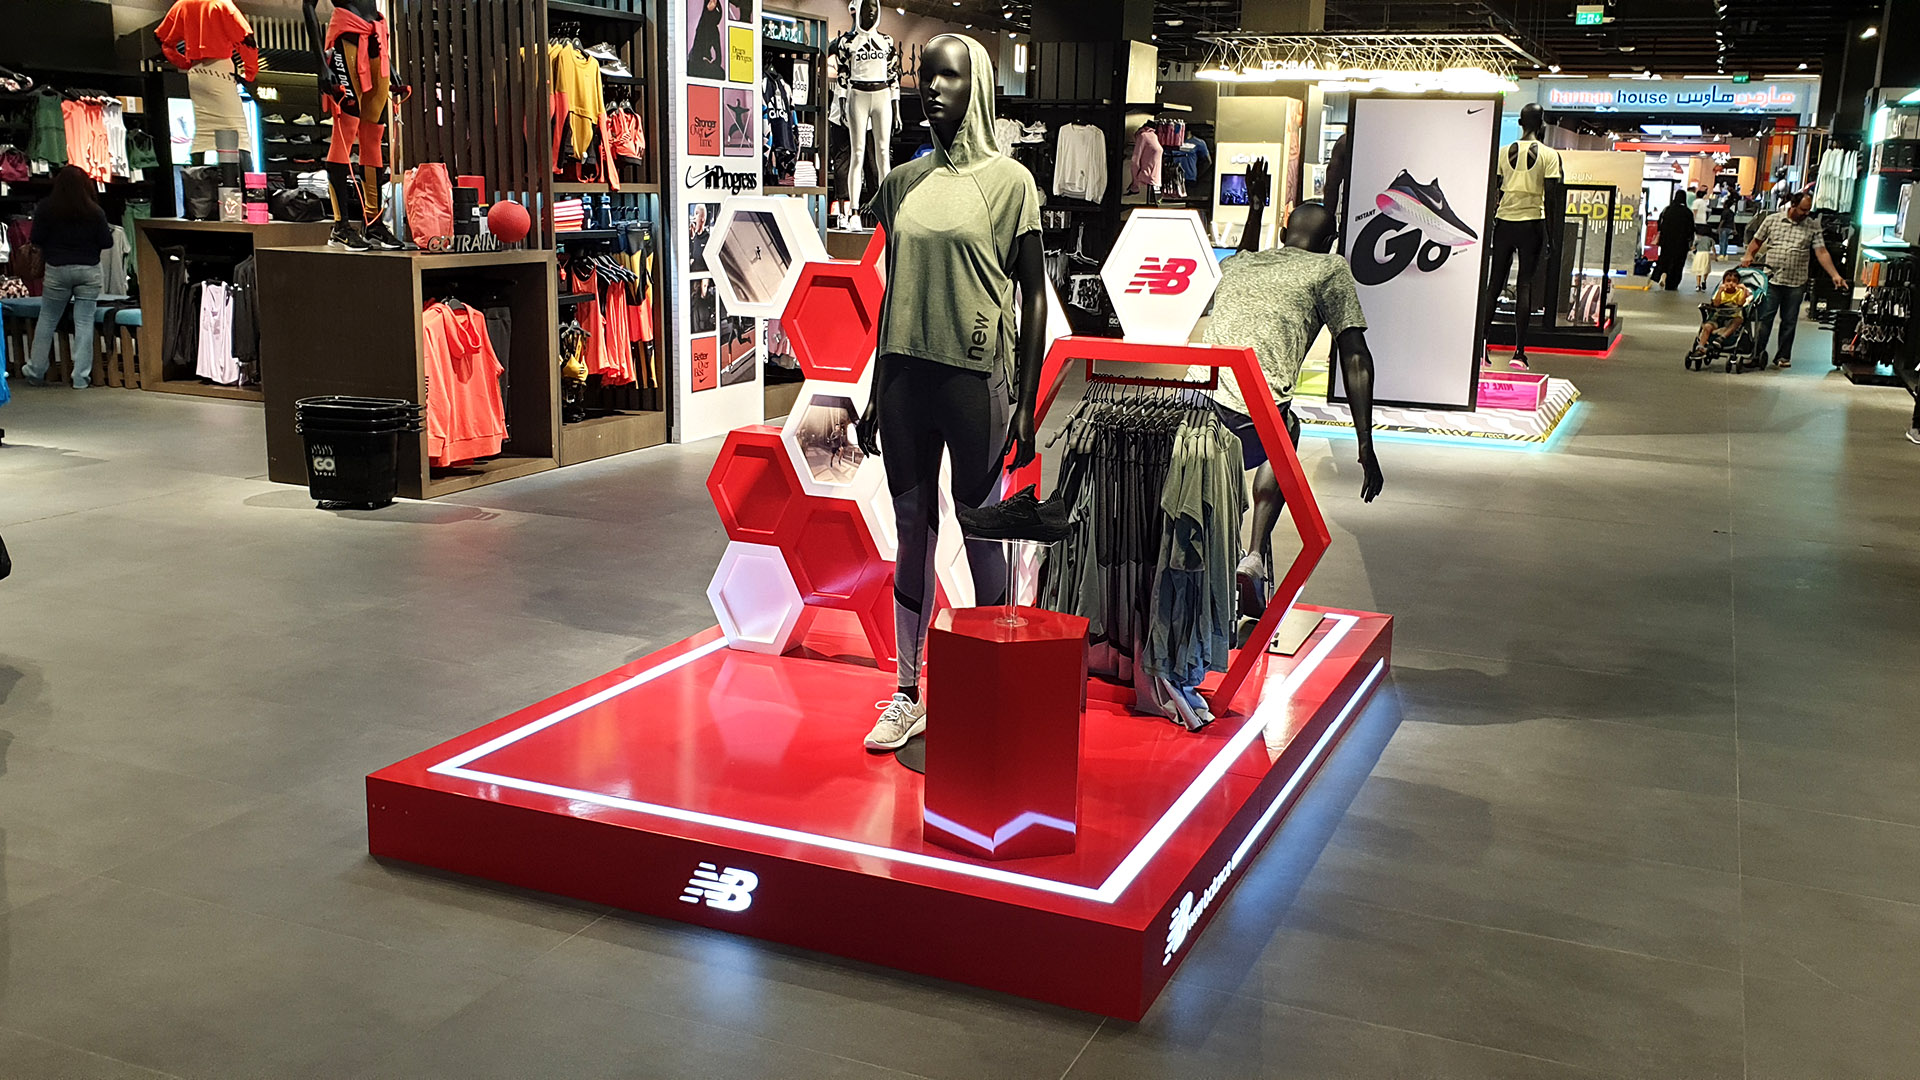 New Balance retail display stand fabricated and installed by ME Visual at Go Sport stores across Qatar.